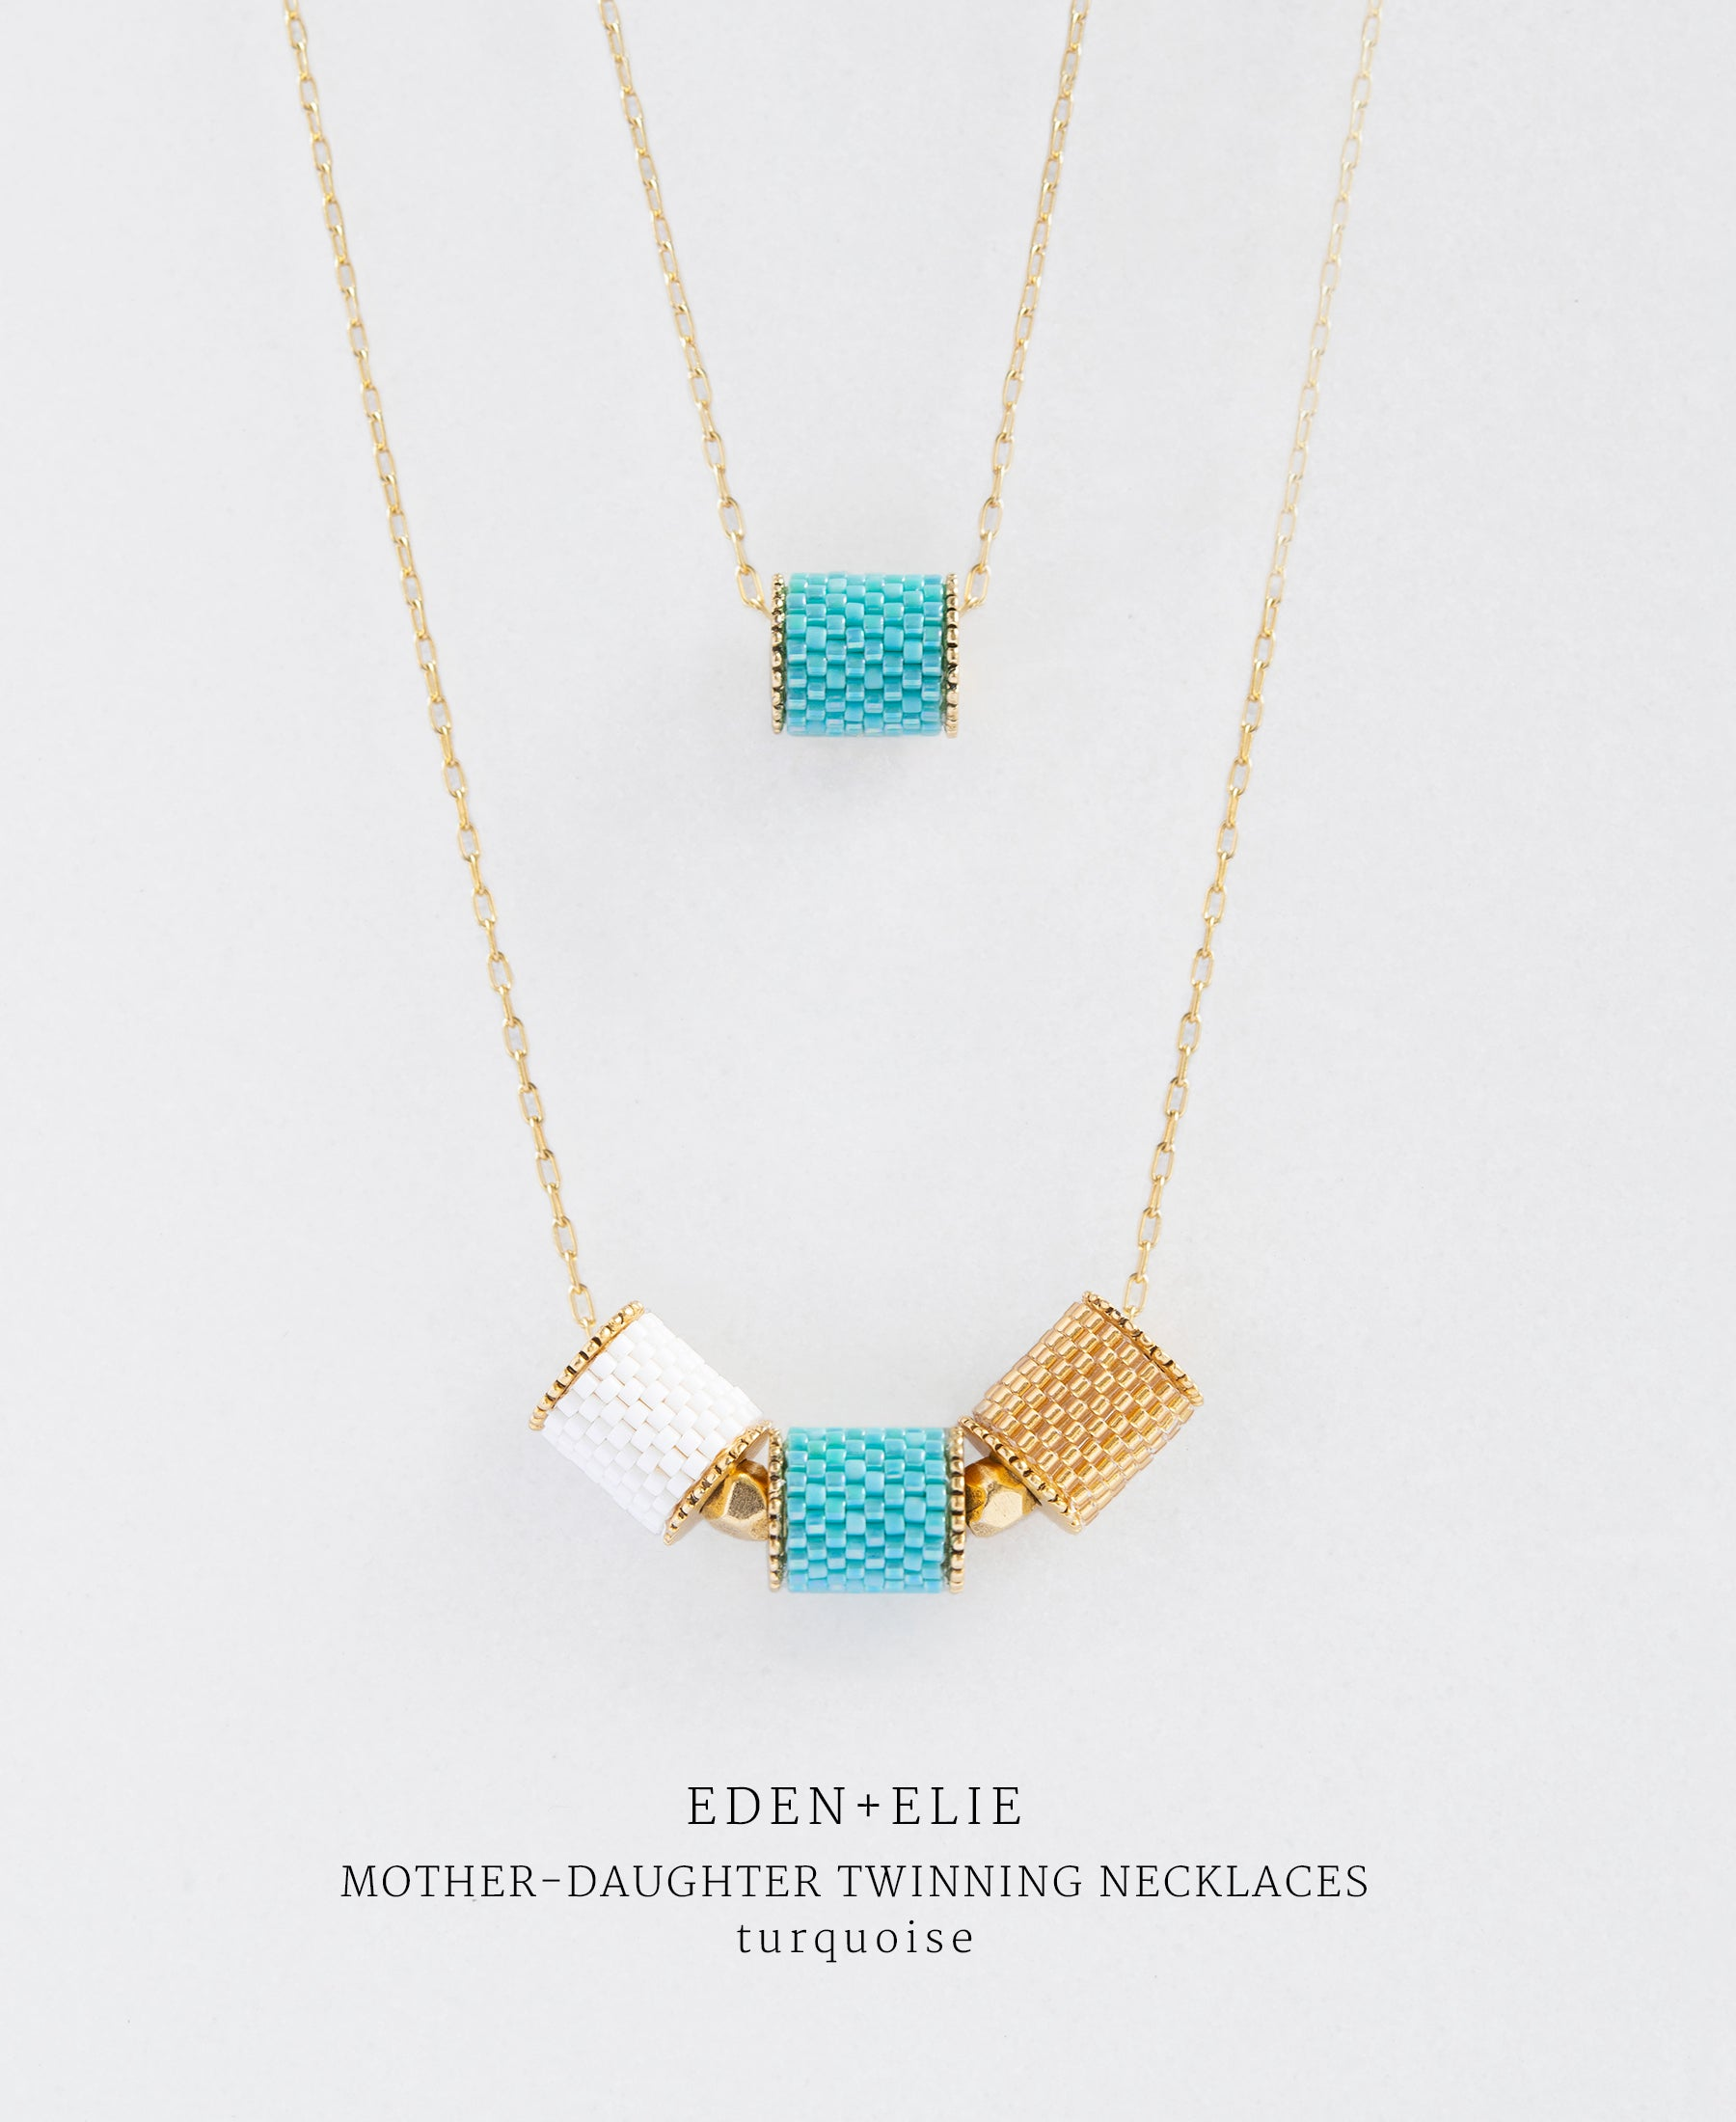 EDEN + ELIE Mother-Daughter twinning necklaces set - turquoise